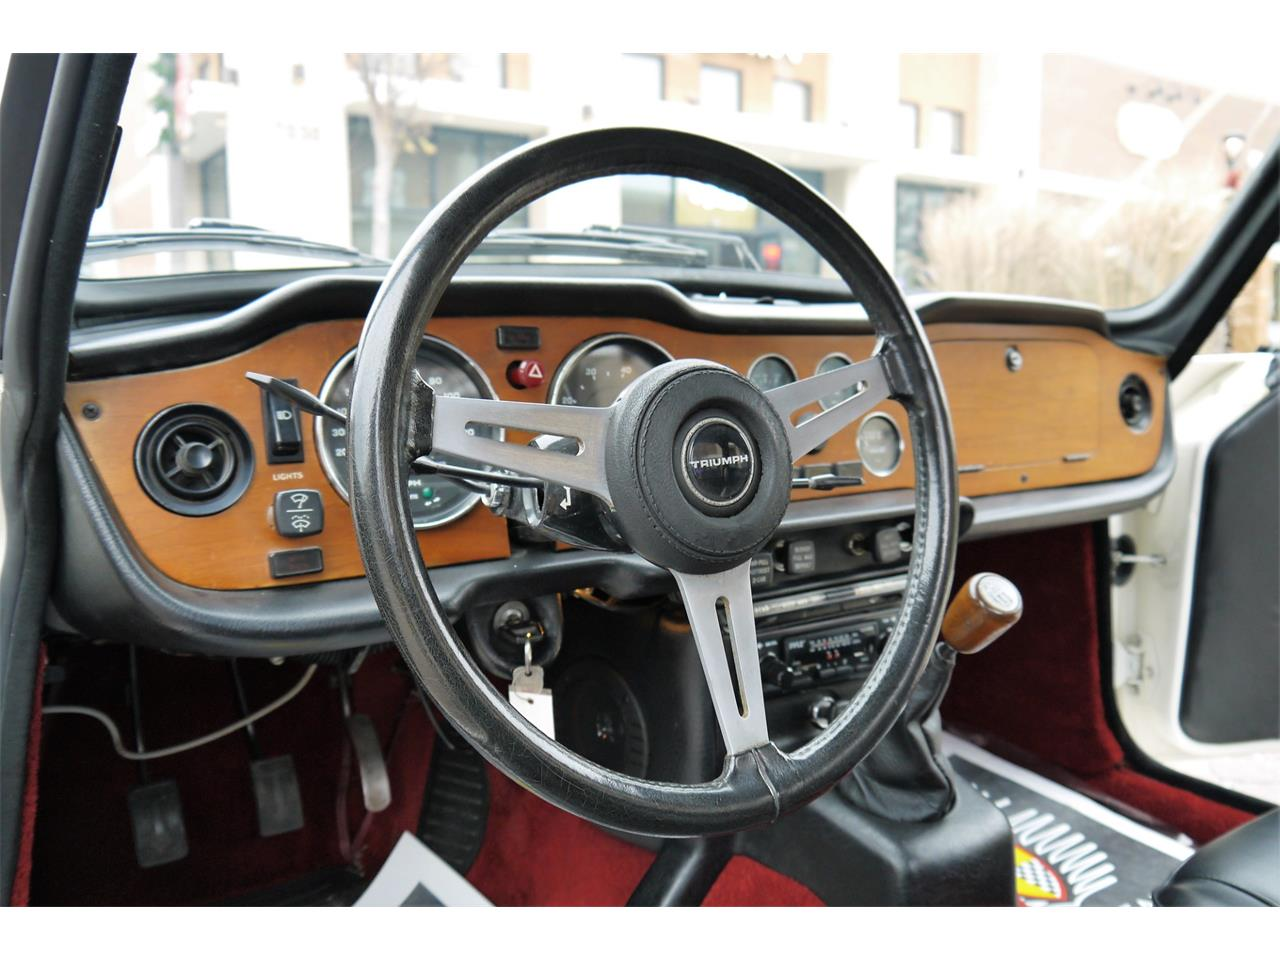 1976 Triumph TR6 for sale in Brentwood, TN – photo 5